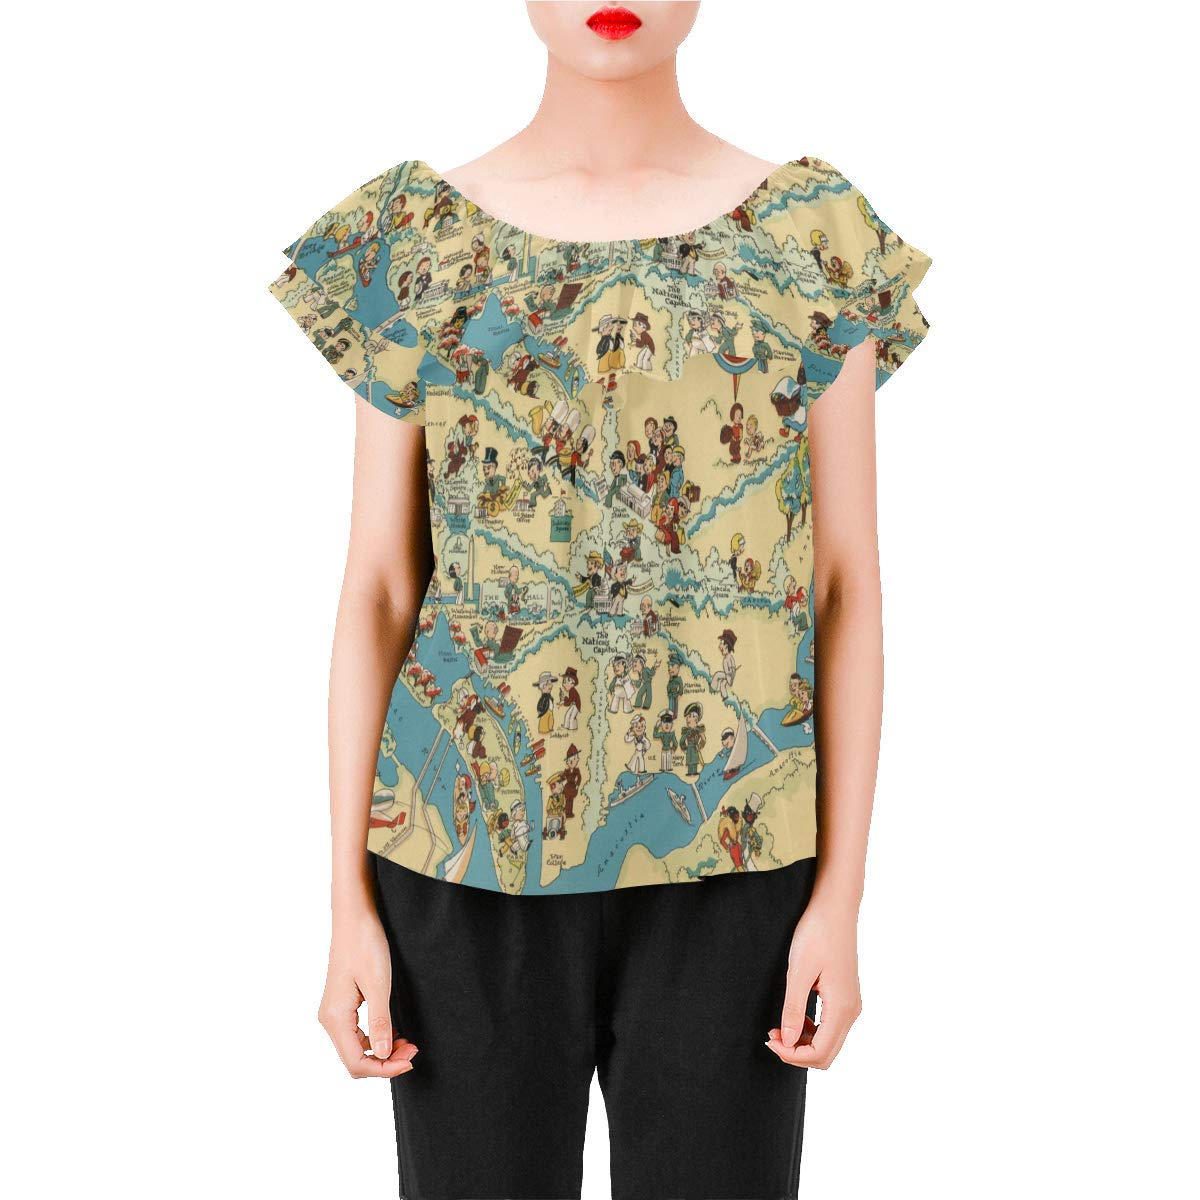 Vintage 1935 District of Columbia State Map Womens A-Line Chiffon Blouse Shirt Tops